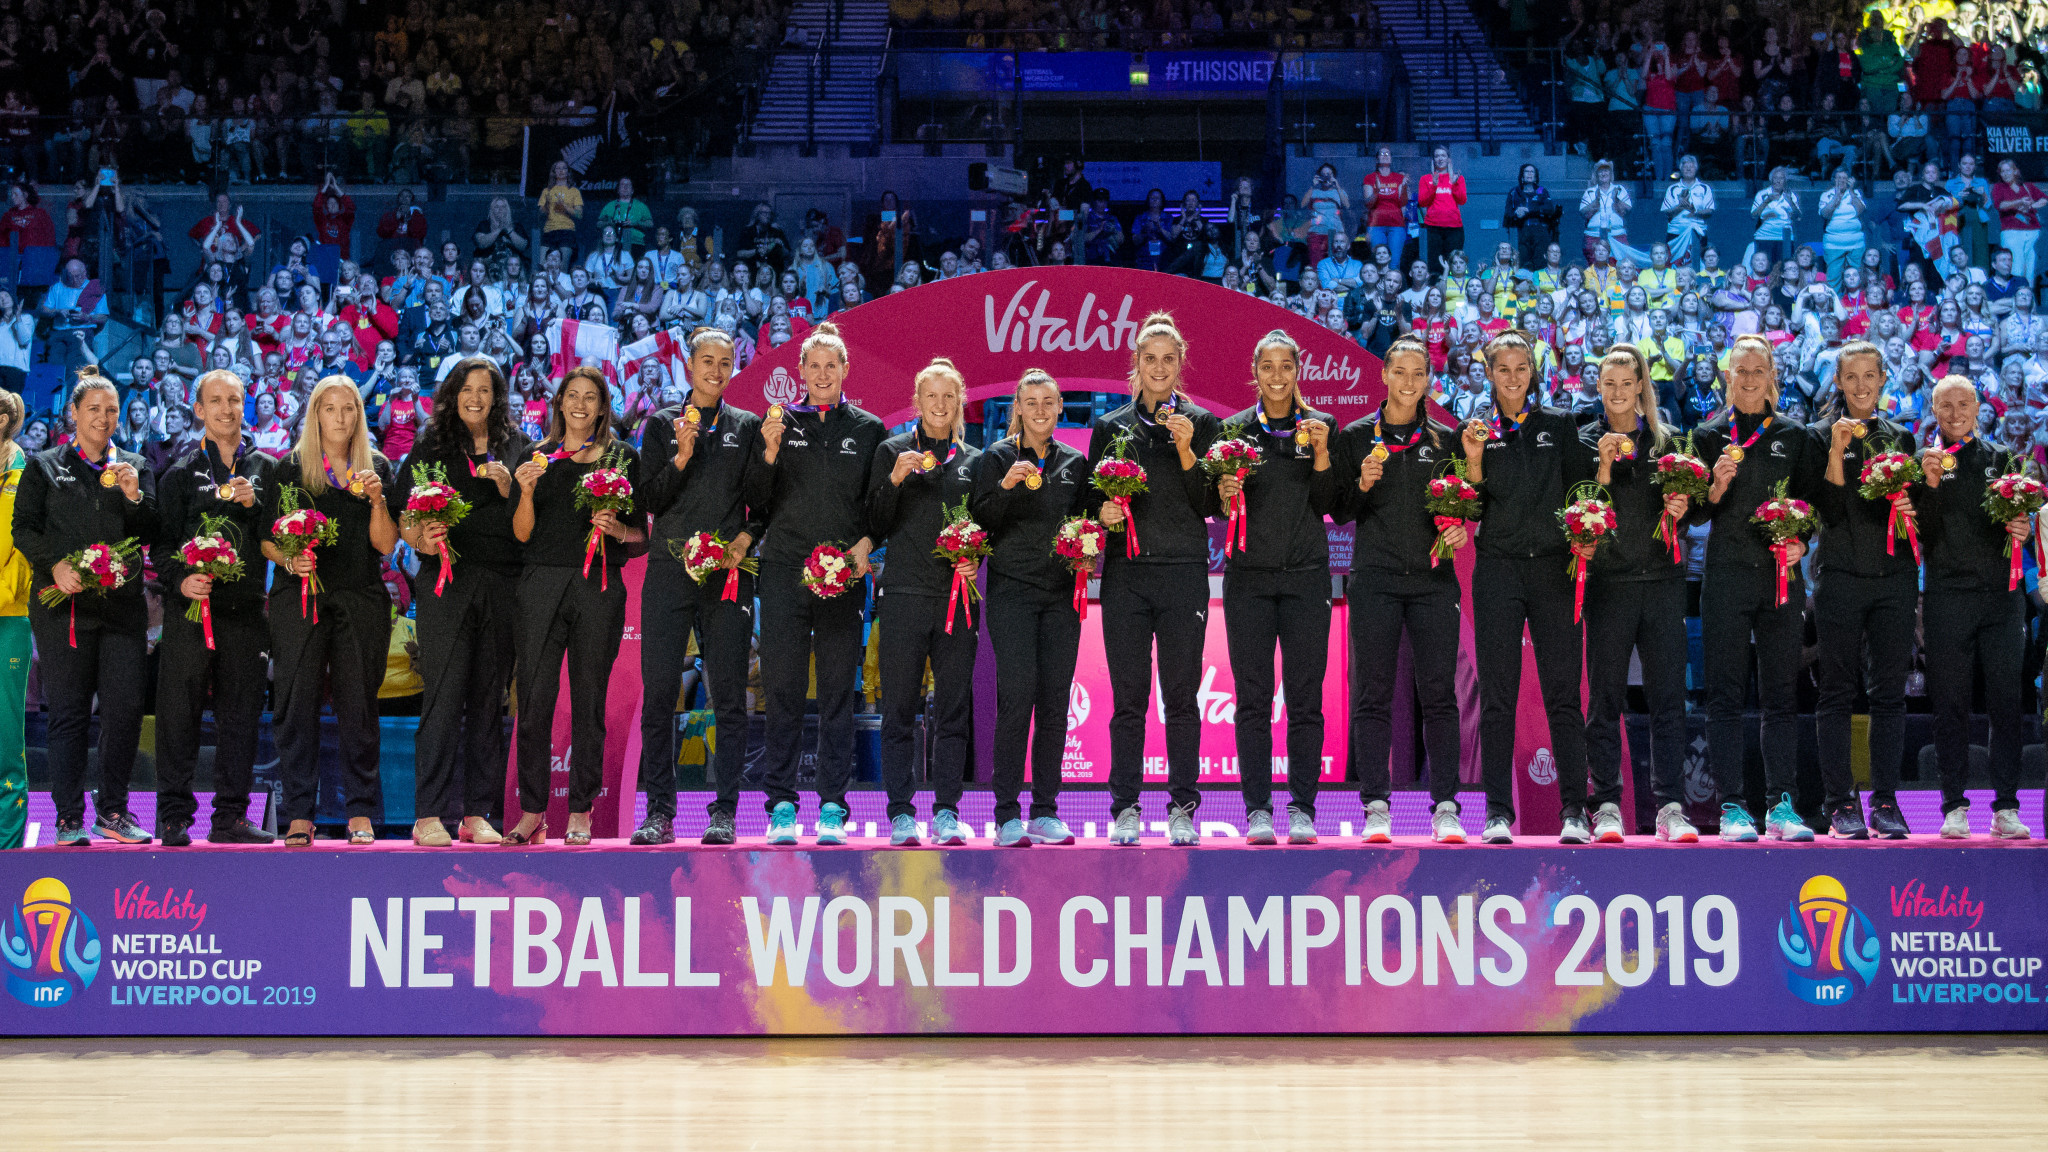 Lindsay Impett was event director at the 2019 Netball World Cup in Liverpool - an event hailed as a huge success ©Getty Images